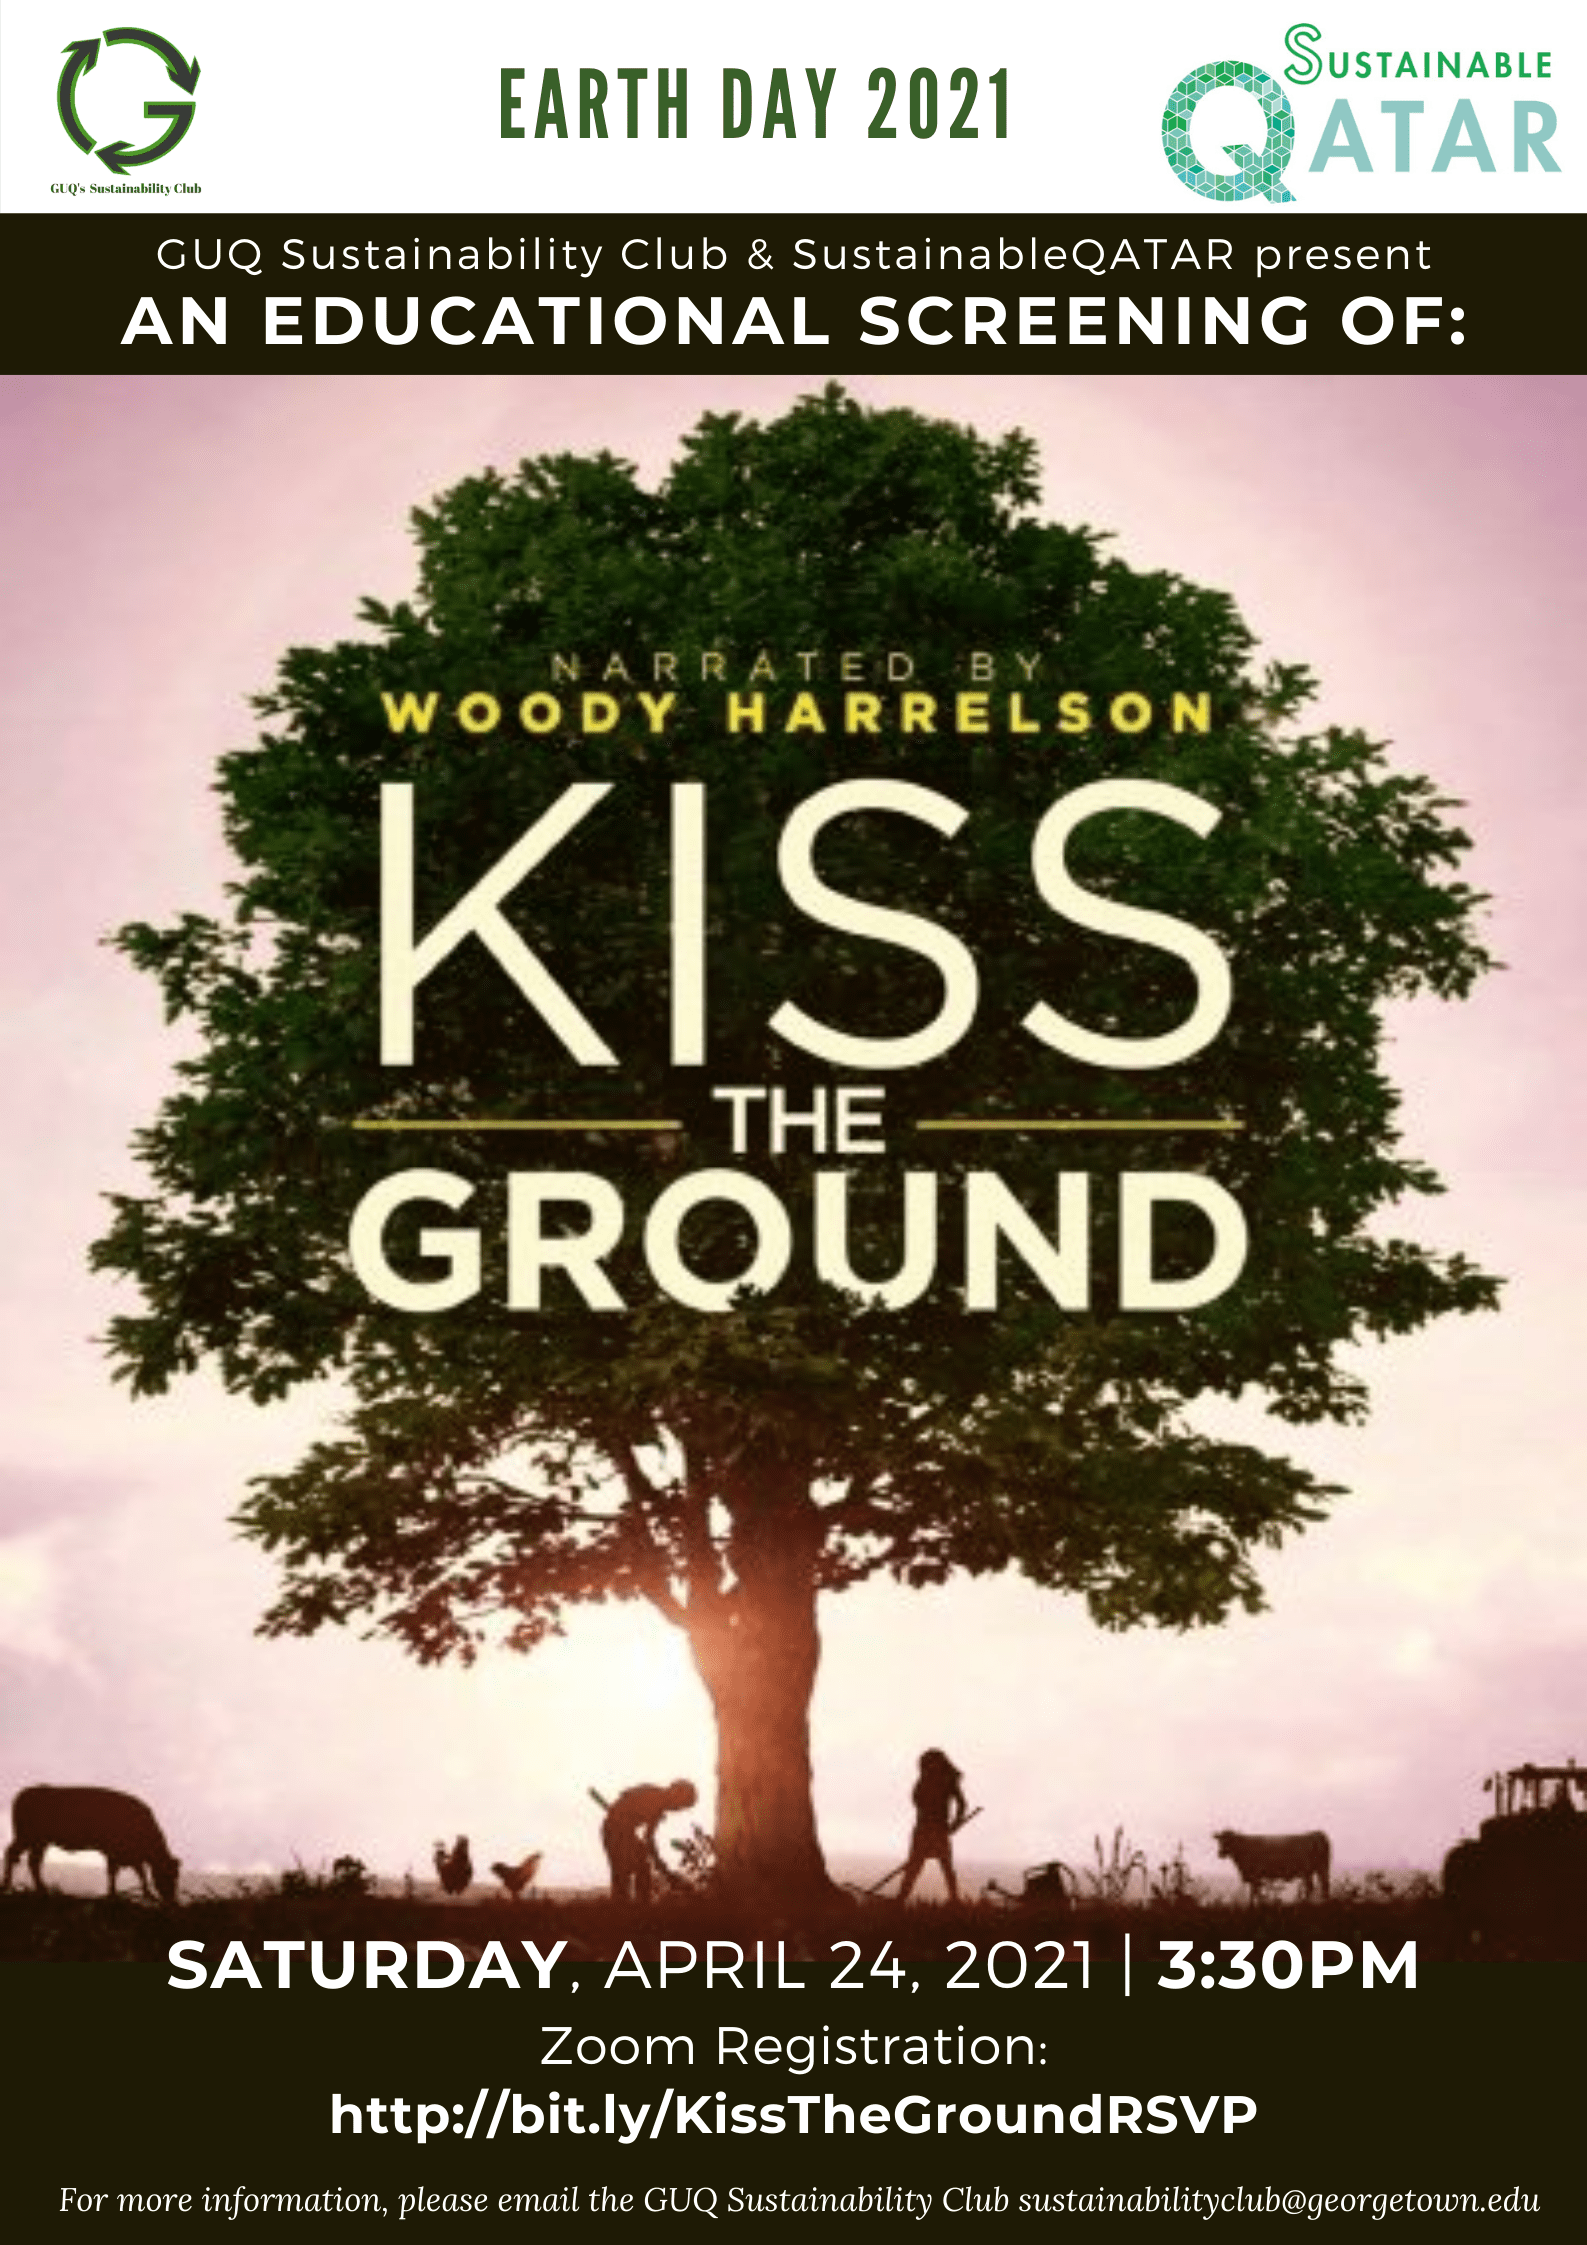 """image of a large tree with the sunset in the back ground and some two dark human shadows of a man and a woman on opposite side of the tree appearing to hold digging tools, and some farm animals walking around - The title of the movie """"Kiss the Ground"""" appears on the front of the tree and at the bottom of the poster is the event details."""